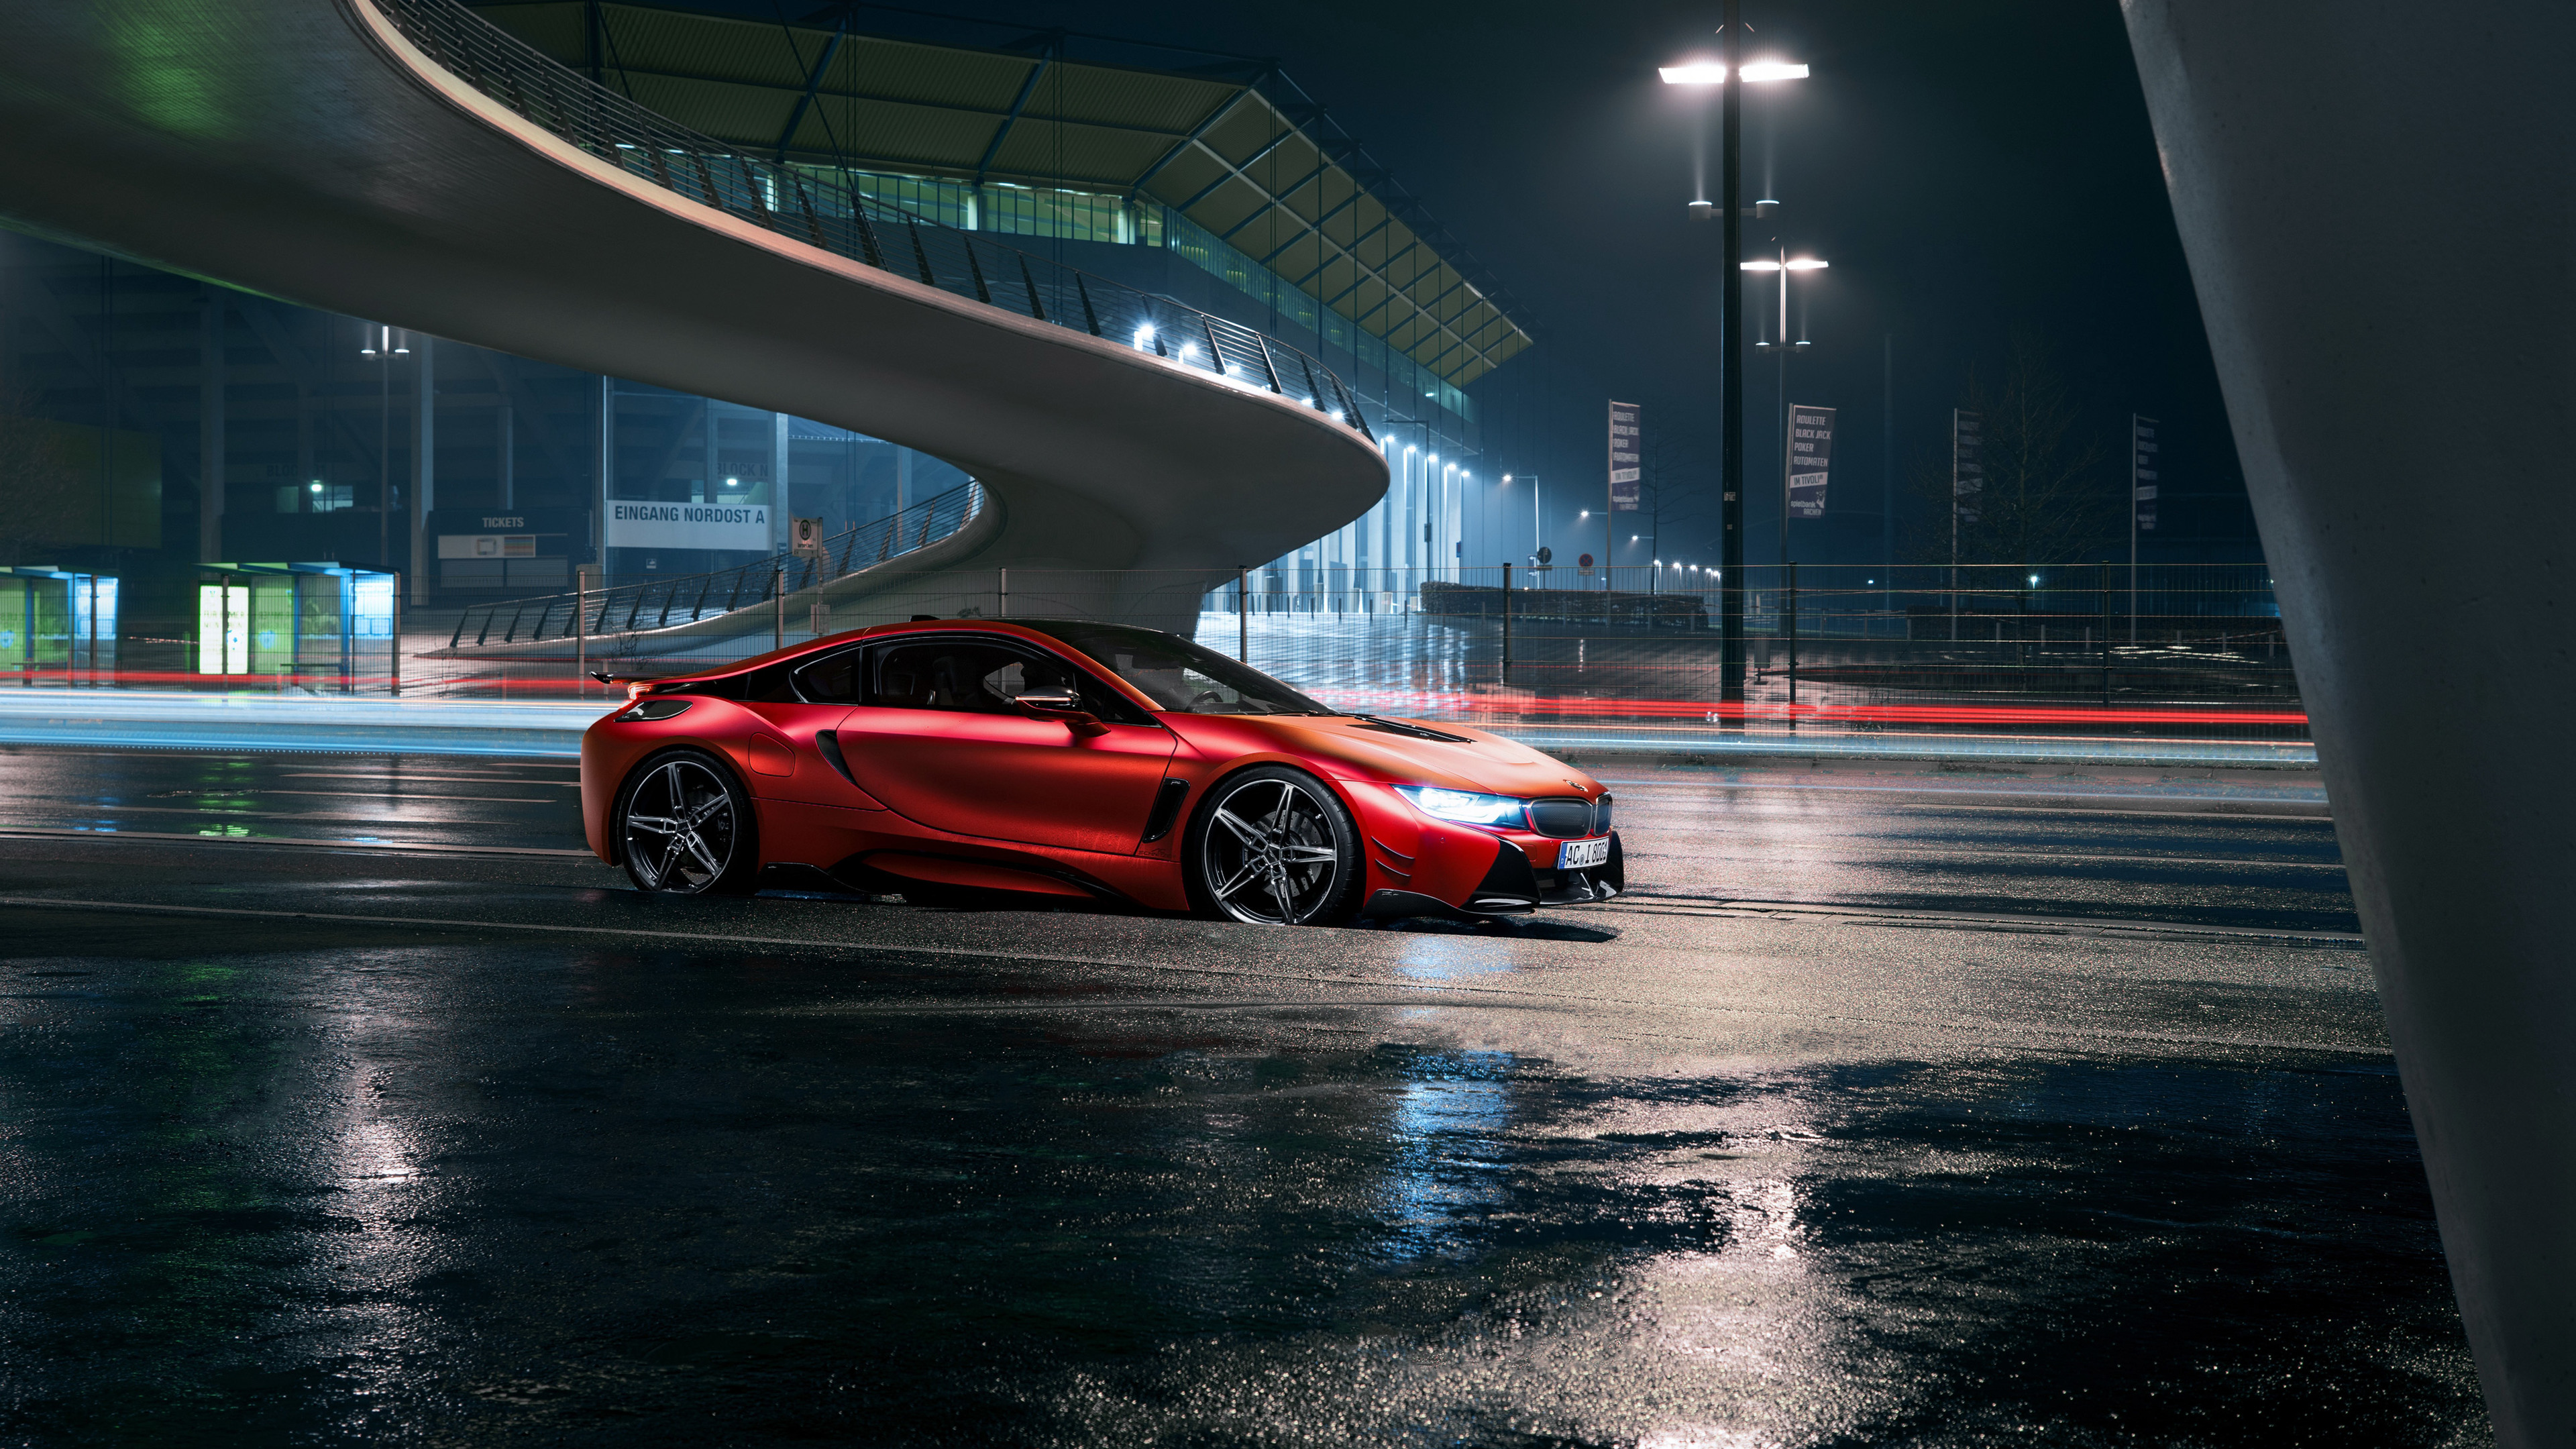 1280x1280 Car Wallpaper Bmw I8 2017 Hd Wallpapers Cars Wallpapers Bmw Wallpapers